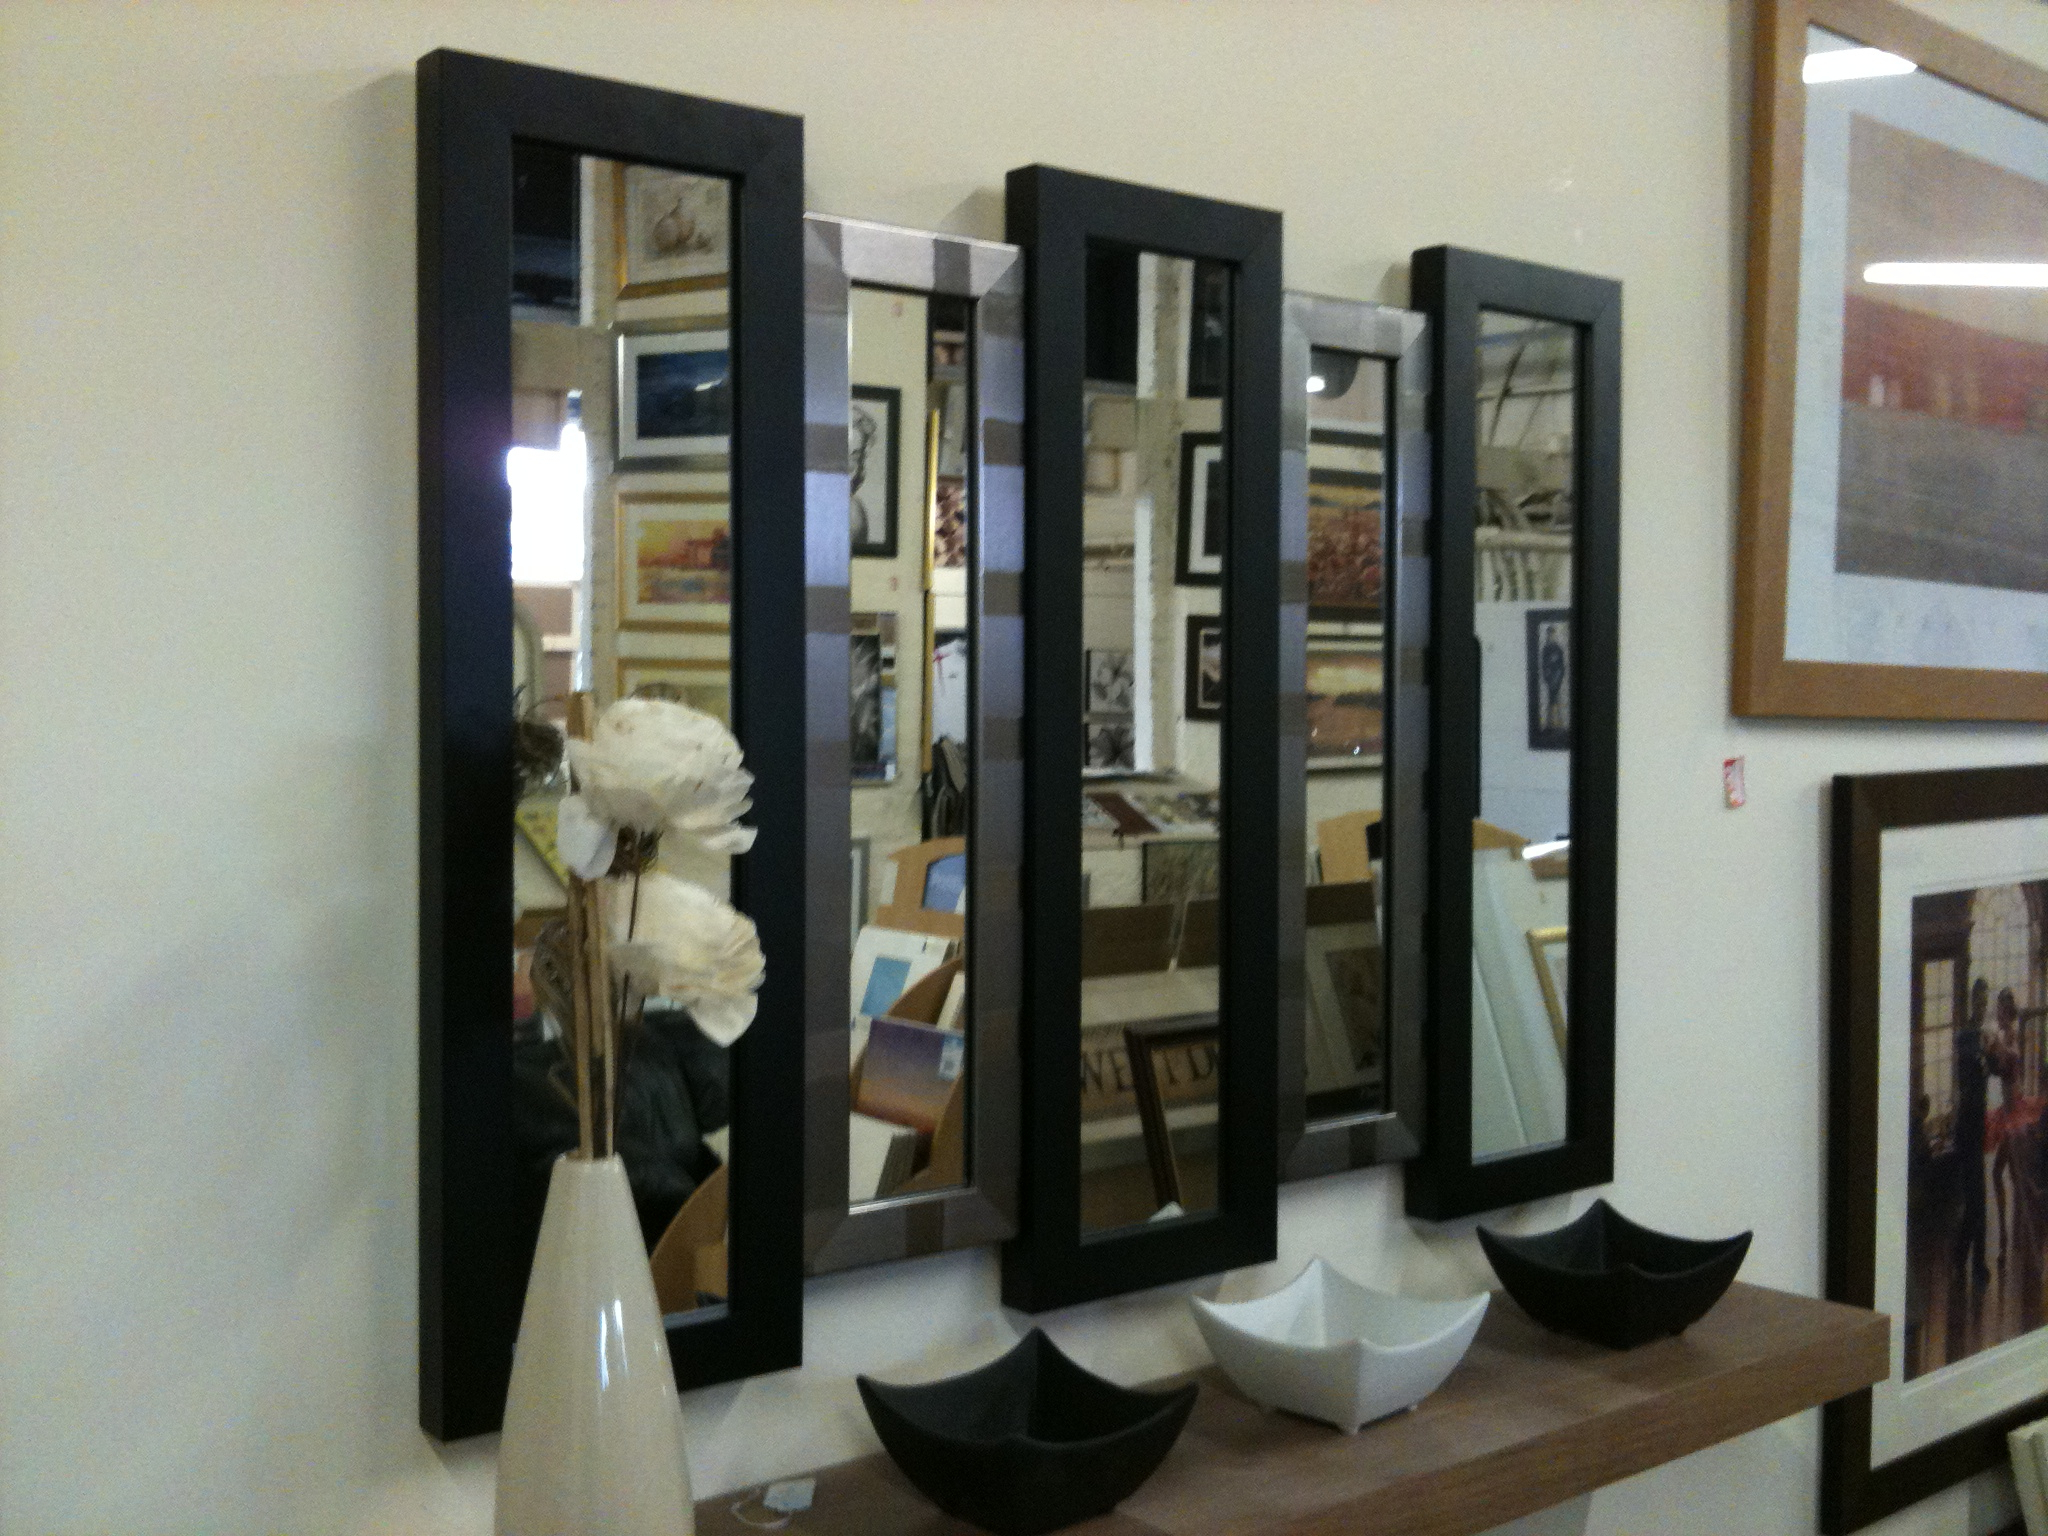 Black And Silver Wall Mirrors Regarding 2020 New Black/silver 5 Panel Wall Mirror 105 X 76 Cm (View 4 of 20)